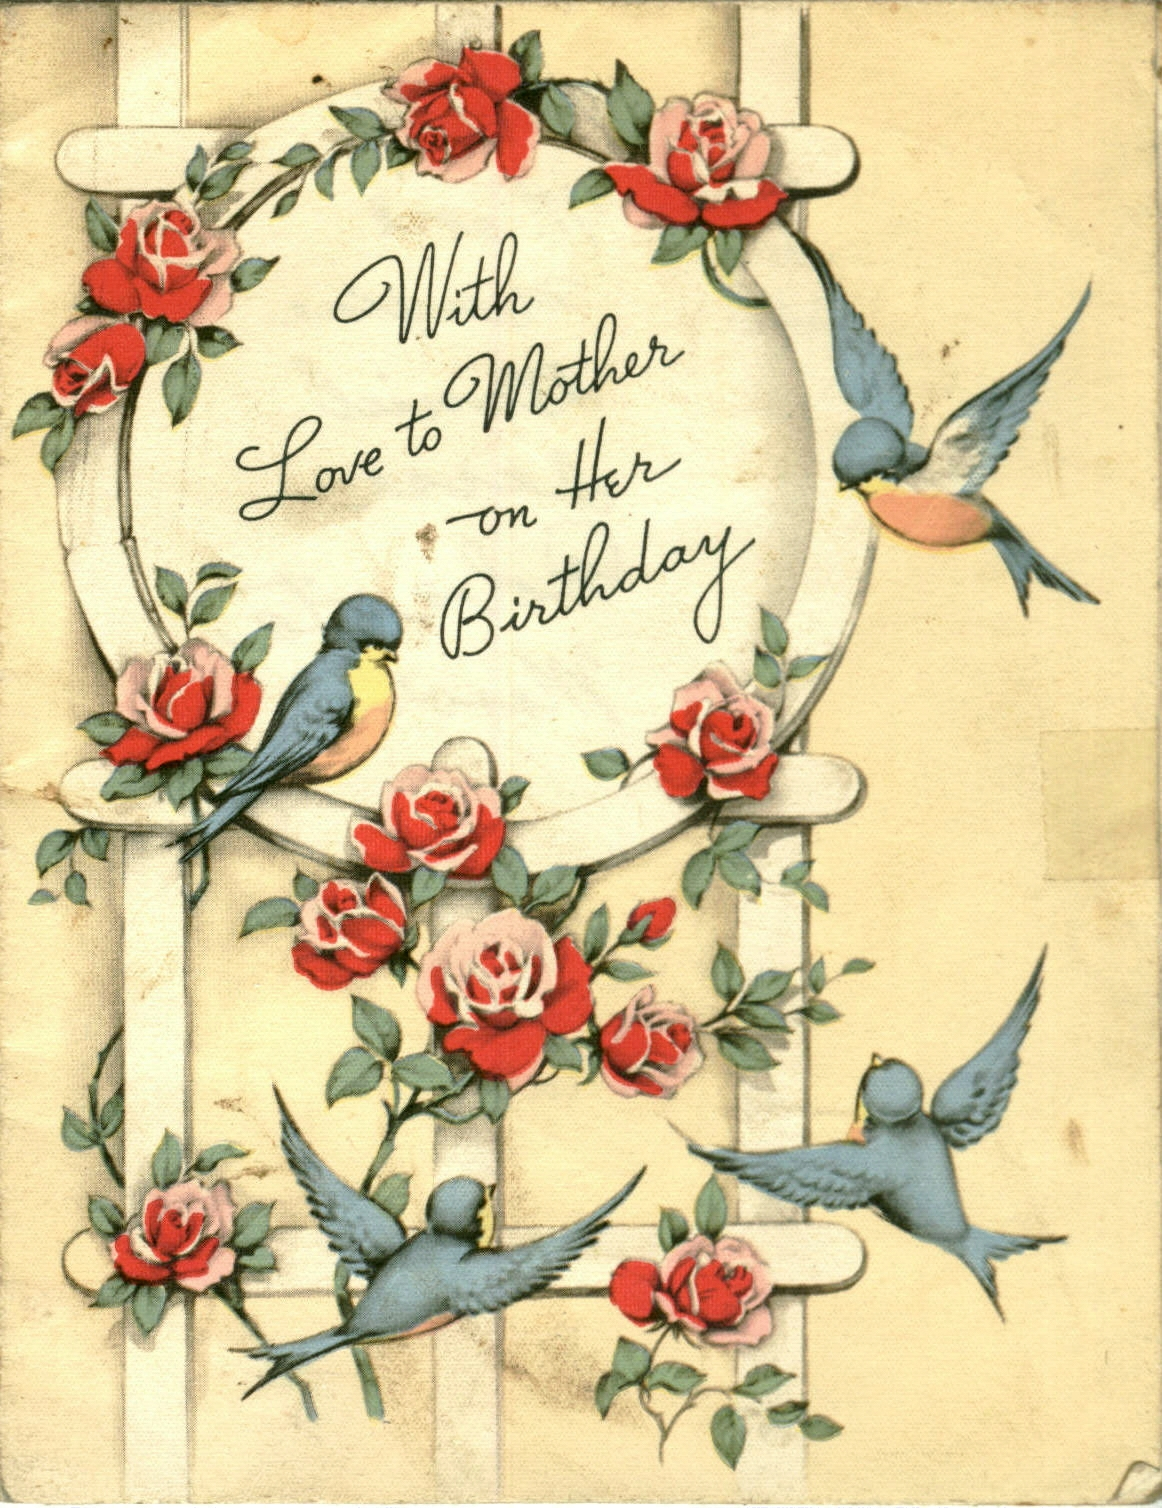 The best hearts are crunchy with love to mother sunday scans this is one of grammies wonderful cards i love the flowers and the little bluebirds they seem so fat and happy the flowers are blooming the birds are m4hsunfo Image collections